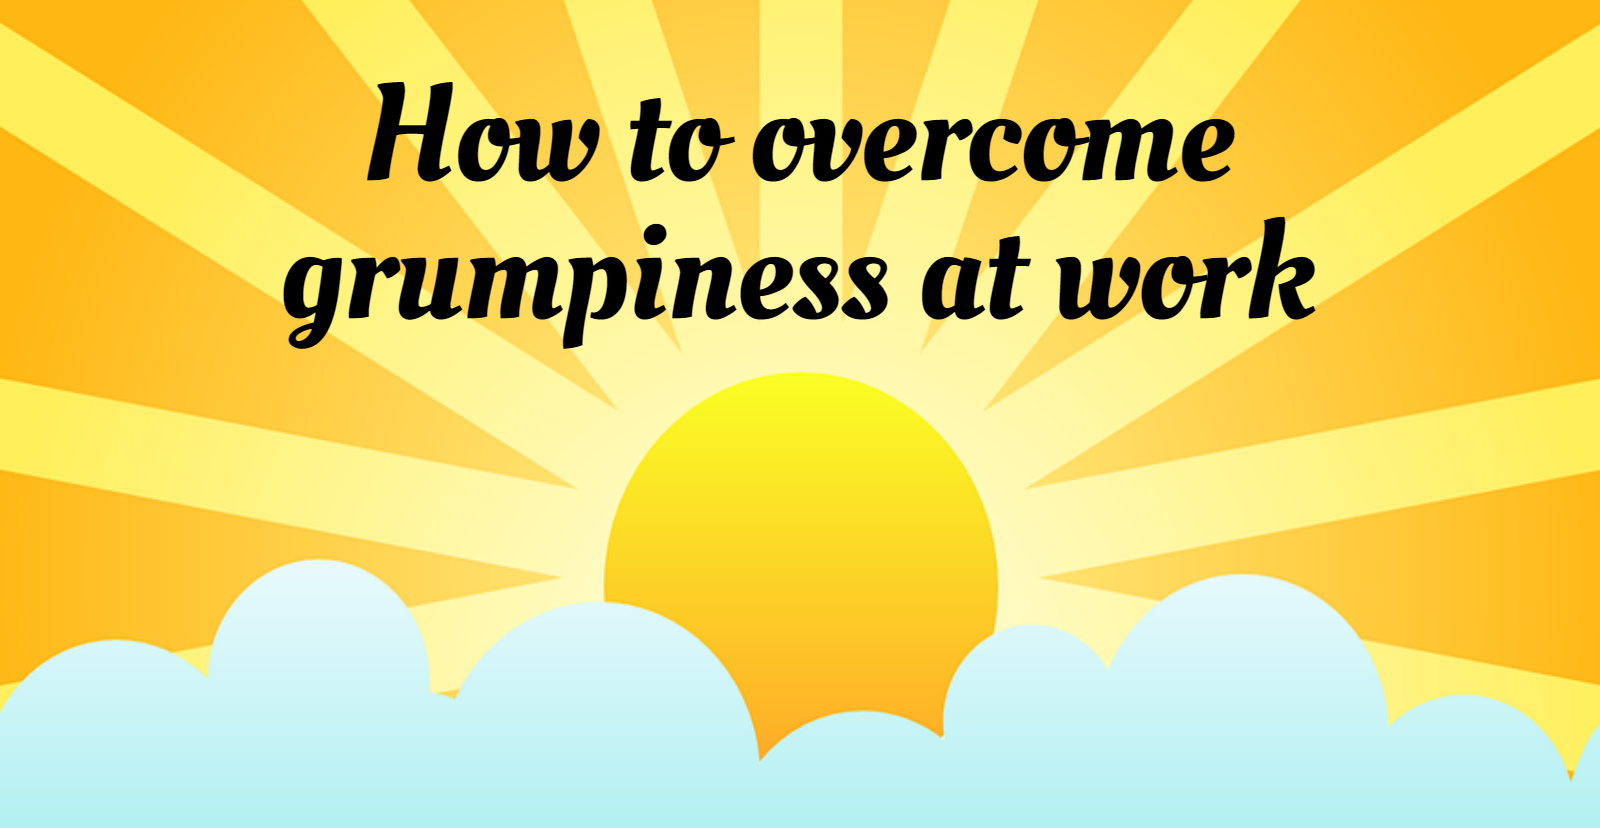 How to overcome grumpiness at work